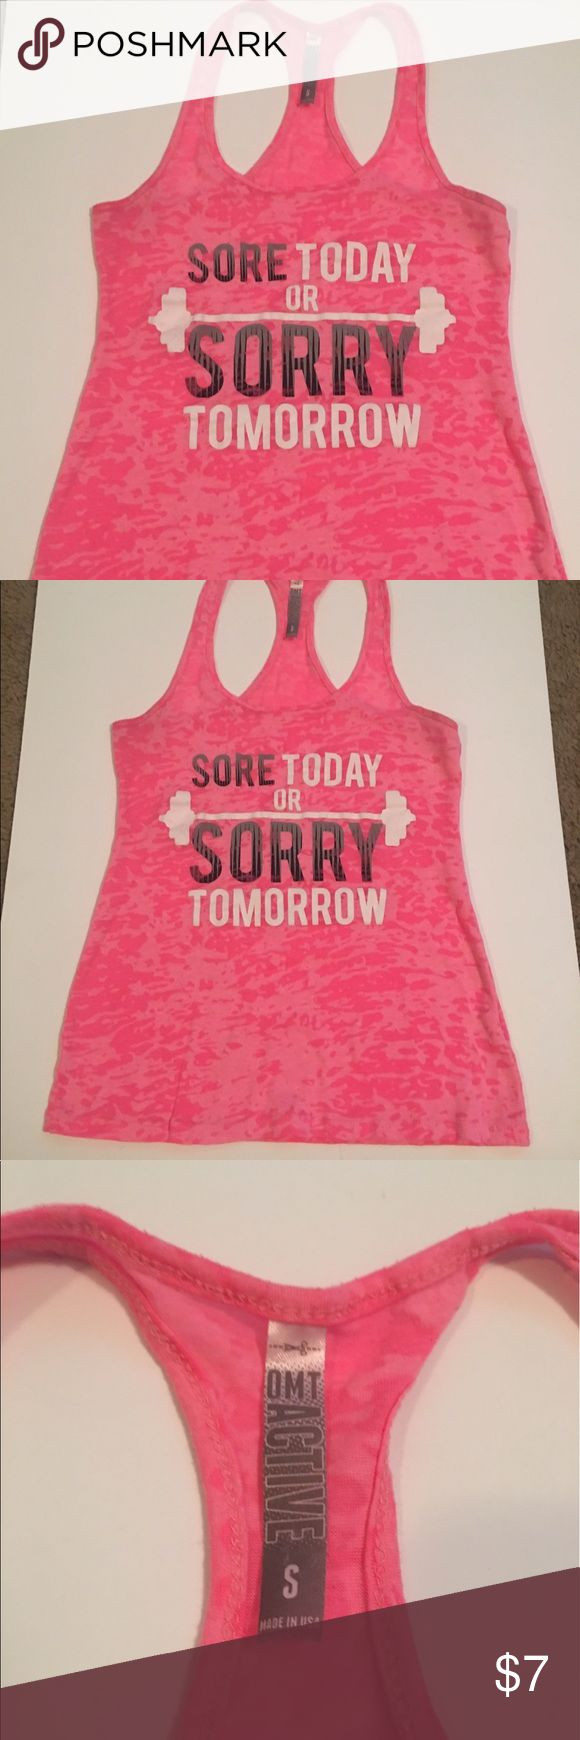 Pink Gym Tank 💪🏼💗Sore Today or Sorry Tomorrow! Hot pink gym tank top with razor back !!! Sore today or sorry tomorrow!!! Great Condition women's size small! Tops Tank Tops